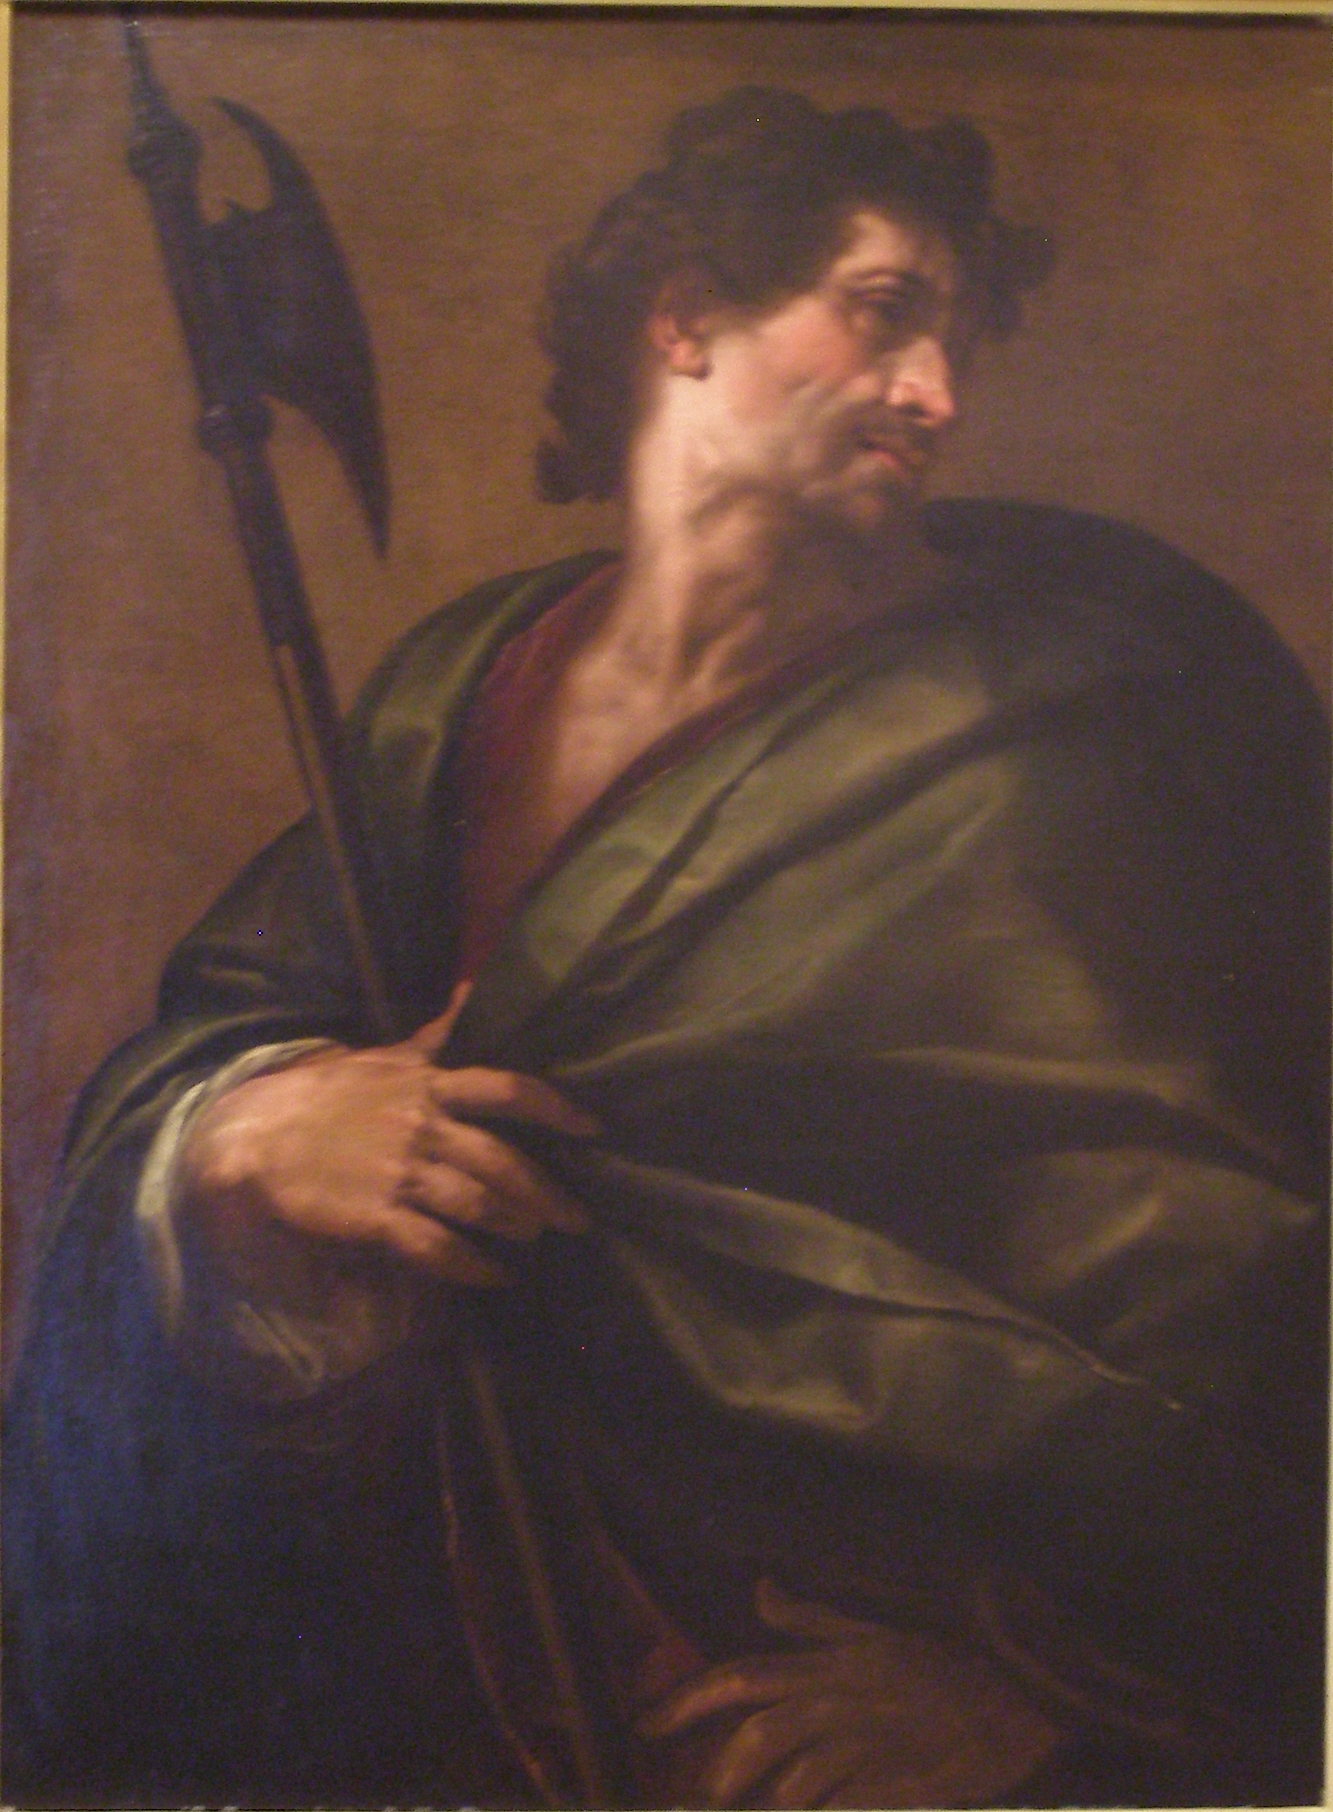 an analysis of two paintings of giulio cesare All procaccini, giulio cesare's oil paintings: between 1597 and 1600 giulio cesare is documented as working as a sculptor for cremona cathedral, to which two.